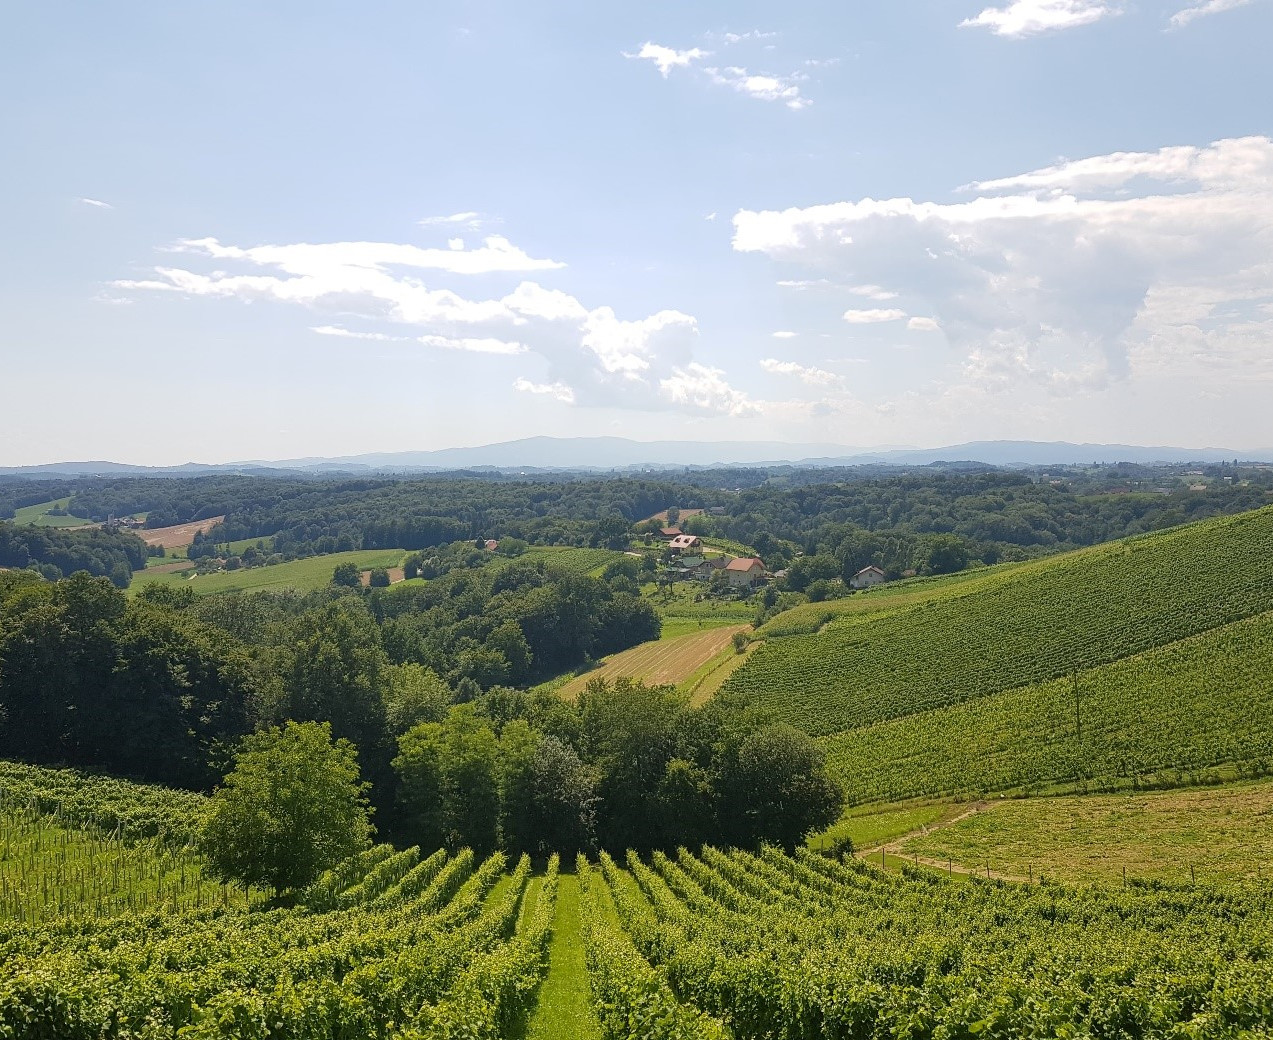 Vineyards in North-eastern Slovenia